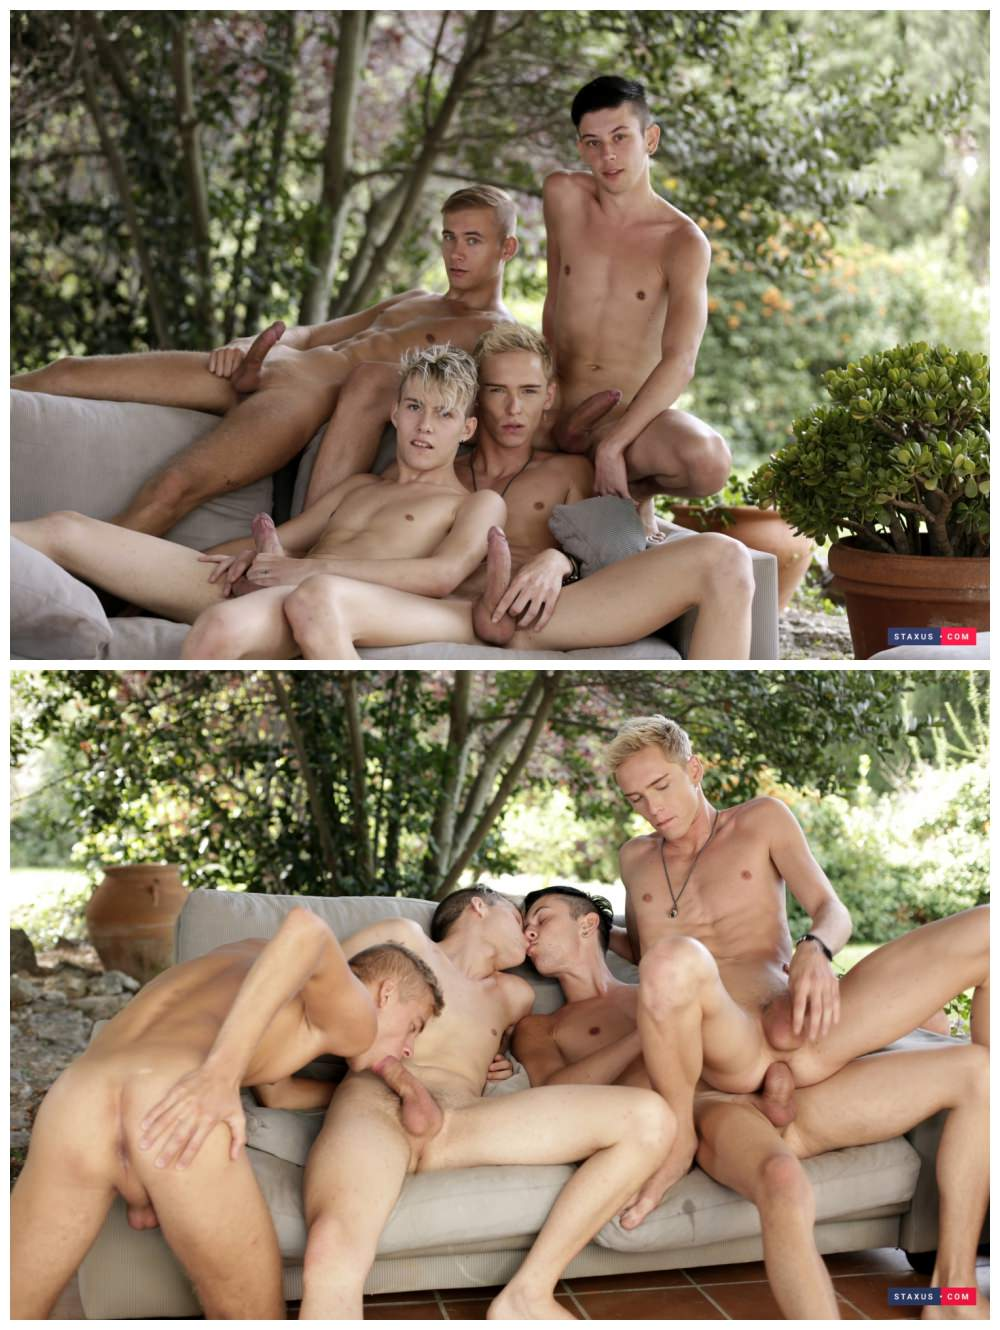 Gay volunteer work in dallas texas